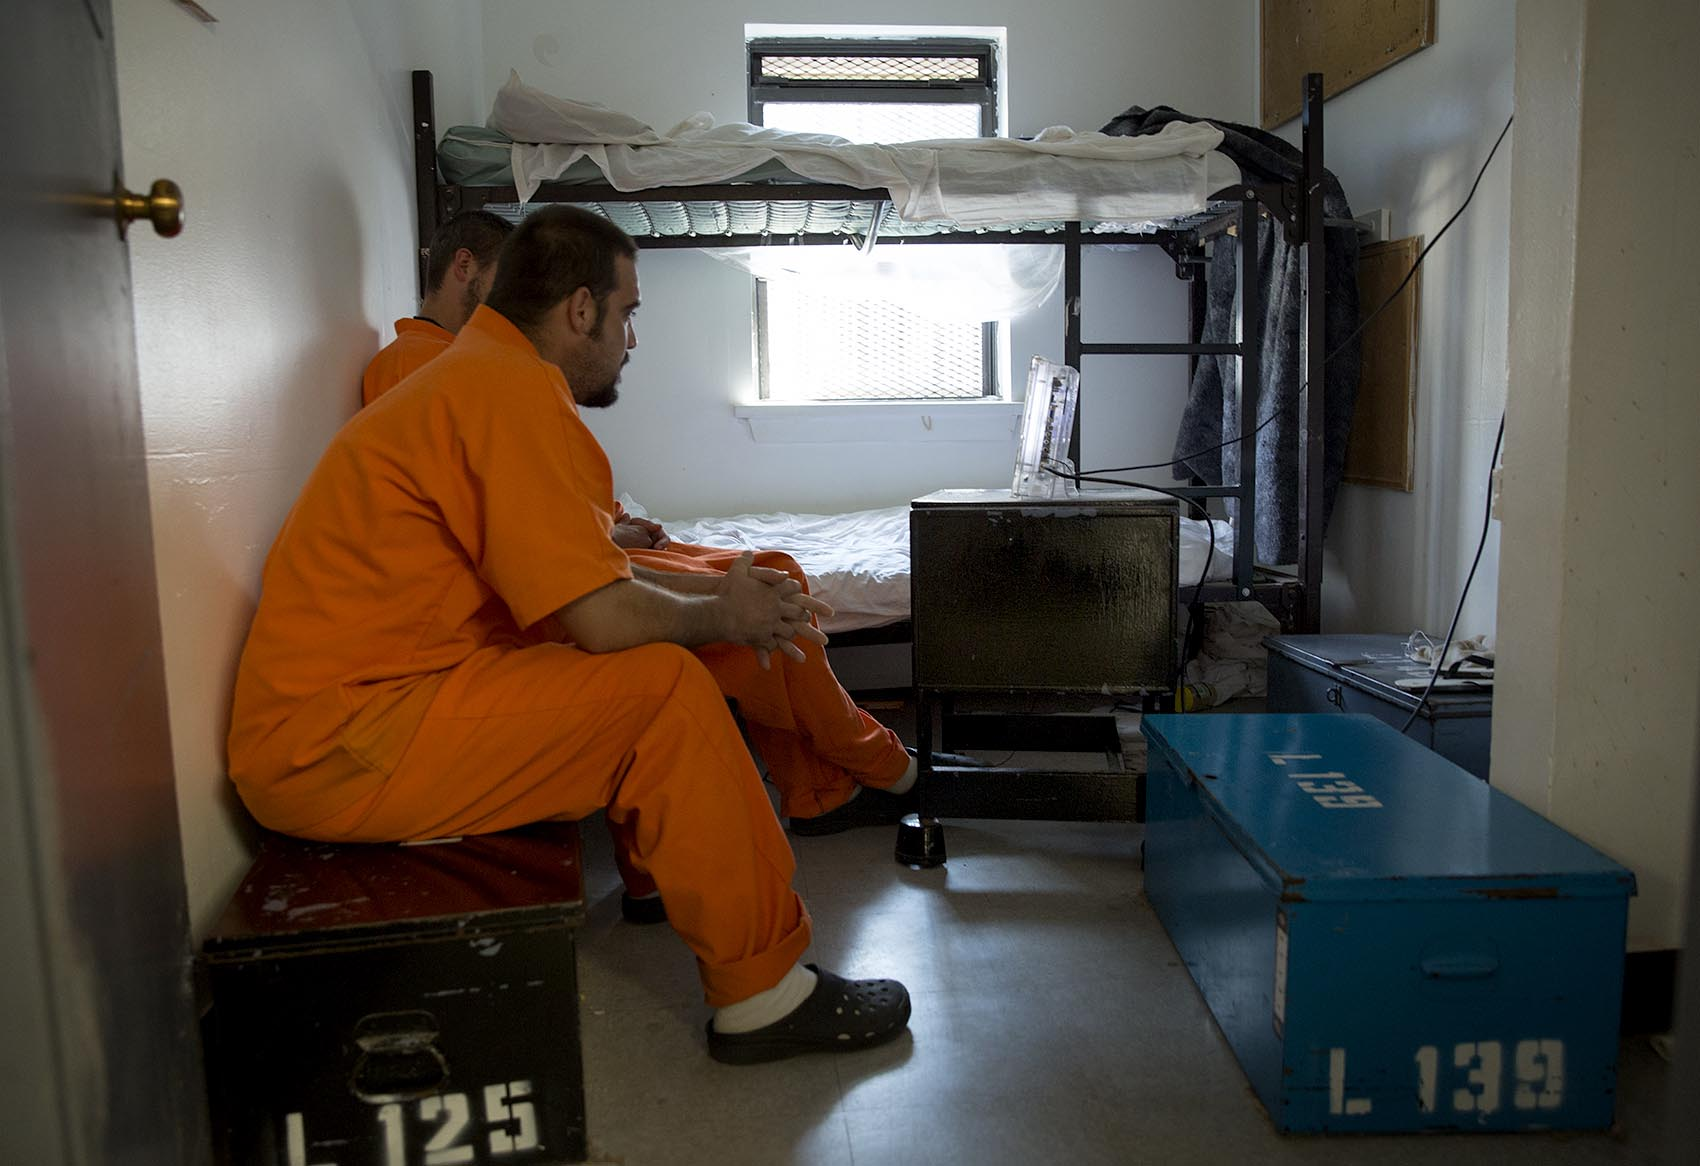 The men stay for 30 to 90 days in small rooms, which are former cells with metal mesh on the widows, bunk beds and wooden foot locker like benches. (Robin Lubbock/WBUR)